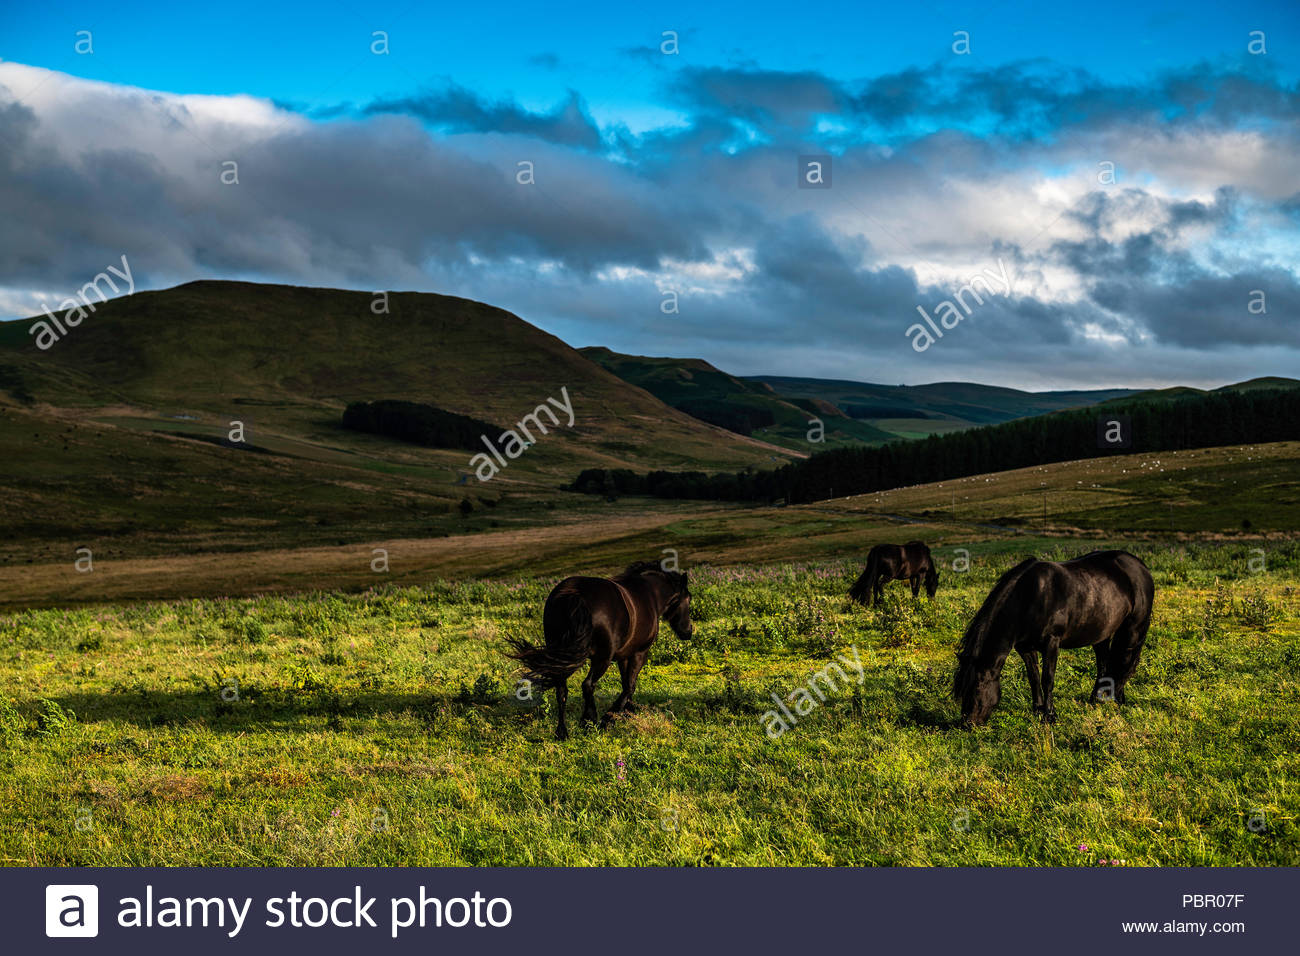 Camptown, Jedburgh, Scottish Borders, UK. 29th July 2018. Fell ponies graze at Pennymuir, a former Roman Camp on Dere Street in the Cheviot hills. Rain swept across the Borders over the weekend but temperatures remianed mild. Credit: Chris Strickland / Alamy Live News - Stock Image